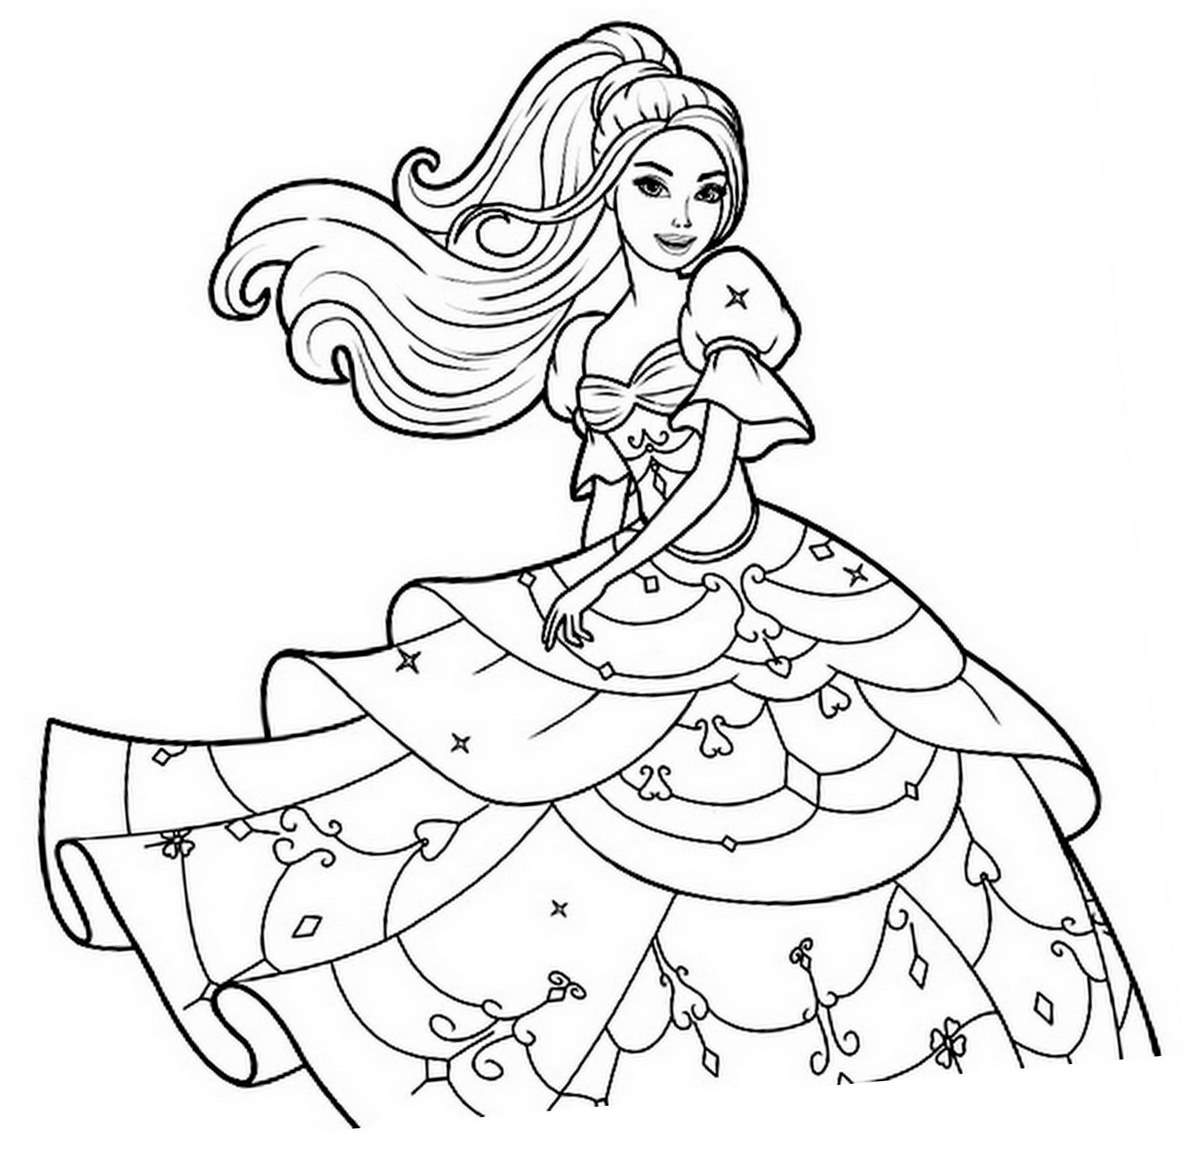 Princesse 1 coloriage princesses coloriages pour enfants - Colriage princesse ...